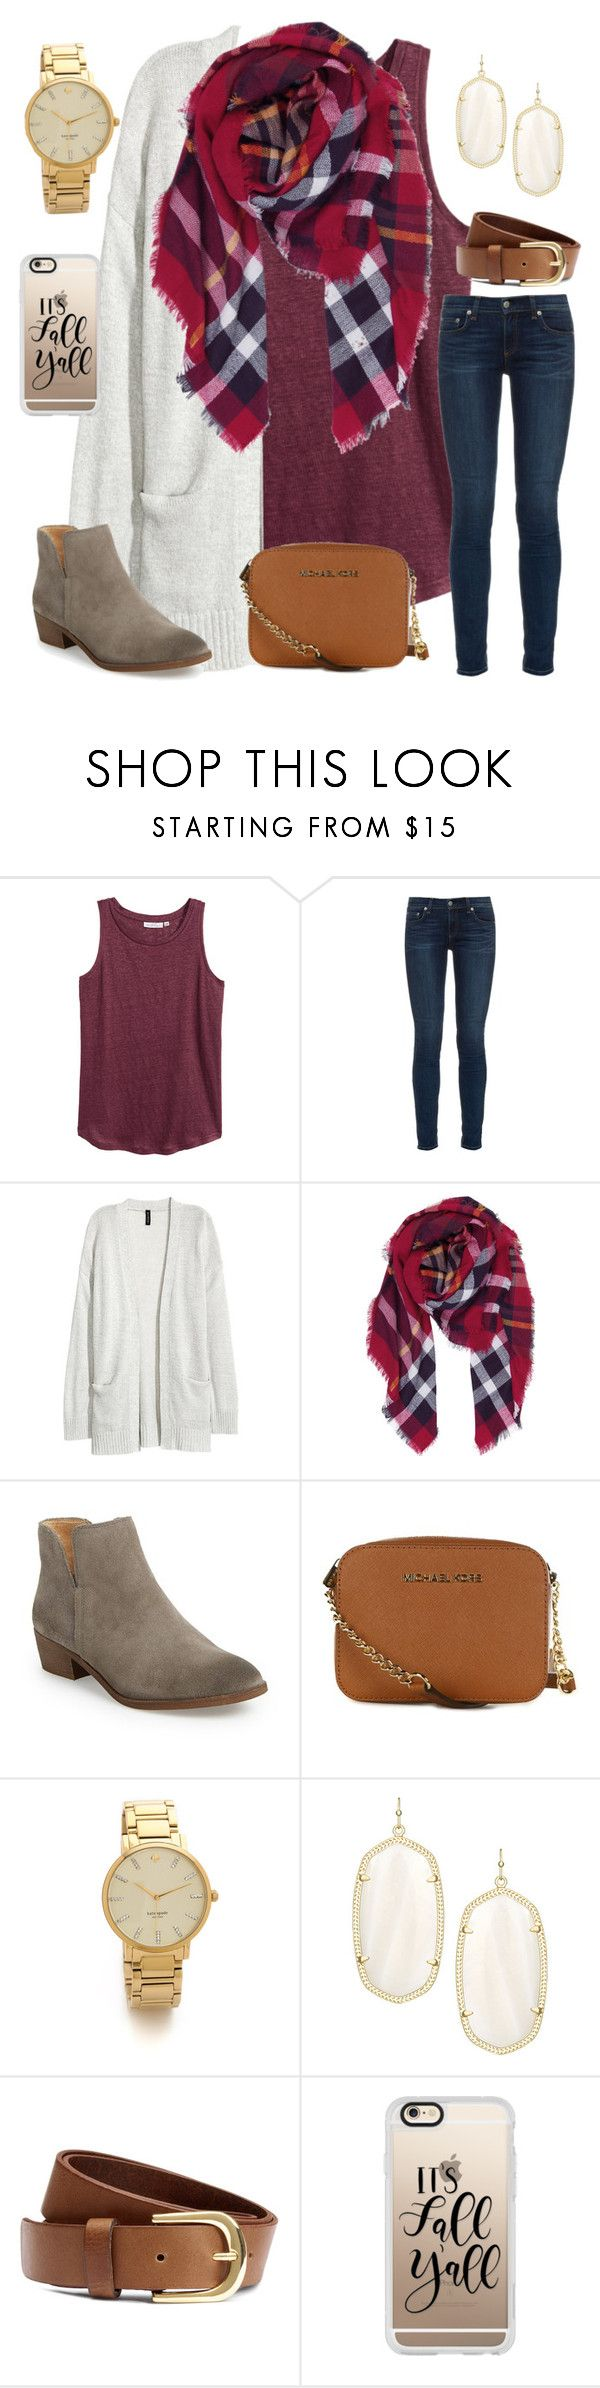 """""""Church was today"""" by ctrygrl1999 ❤ liked on Polyvore featuring H&M, rag & bone, Kofta, Humble Chic, Splendid, MICHAEL Michael Kors, Kate Spade, Kendra Scott and Casetify"""